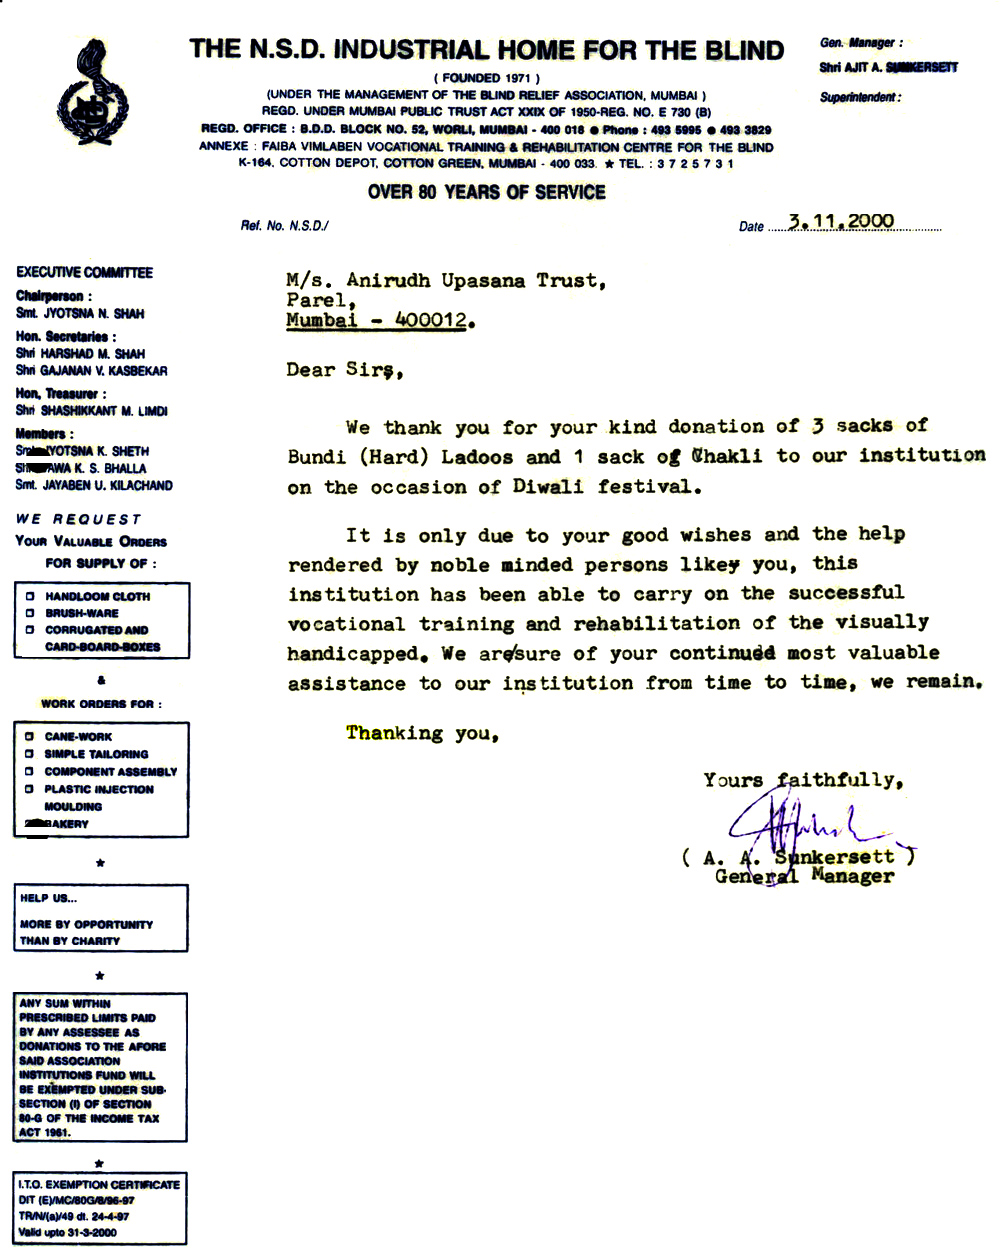 Appreciation-Letter from Vatsalya Trust Mumbai 2000-for-Aniruddhafoundation-Compassion-Social-servicesAppreciation-Letter from The NSD Home fror Blind 2000-for-Aniruddhafoundation-Compassion-Social-services